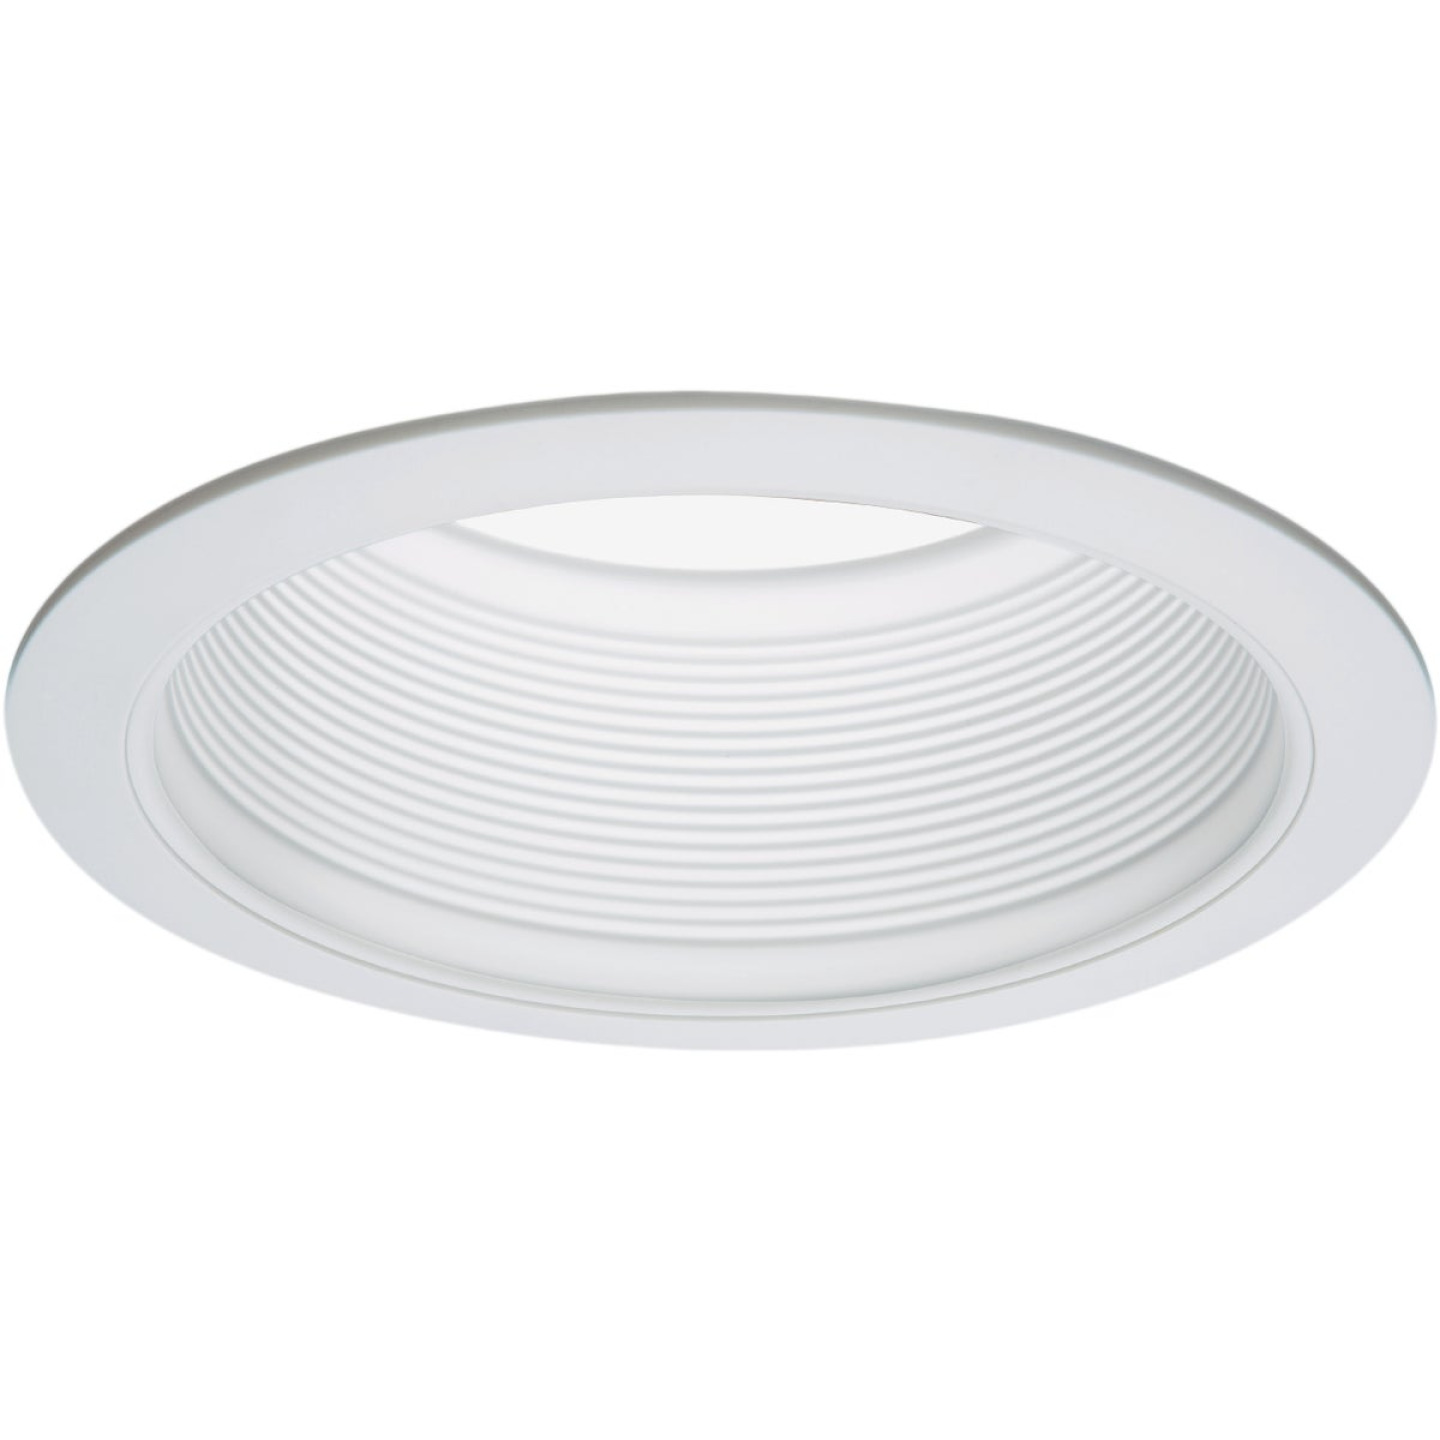 Halo 6 In. White Baffle Recessed Light Fixture Trim with 2 Removable Rings Image 1